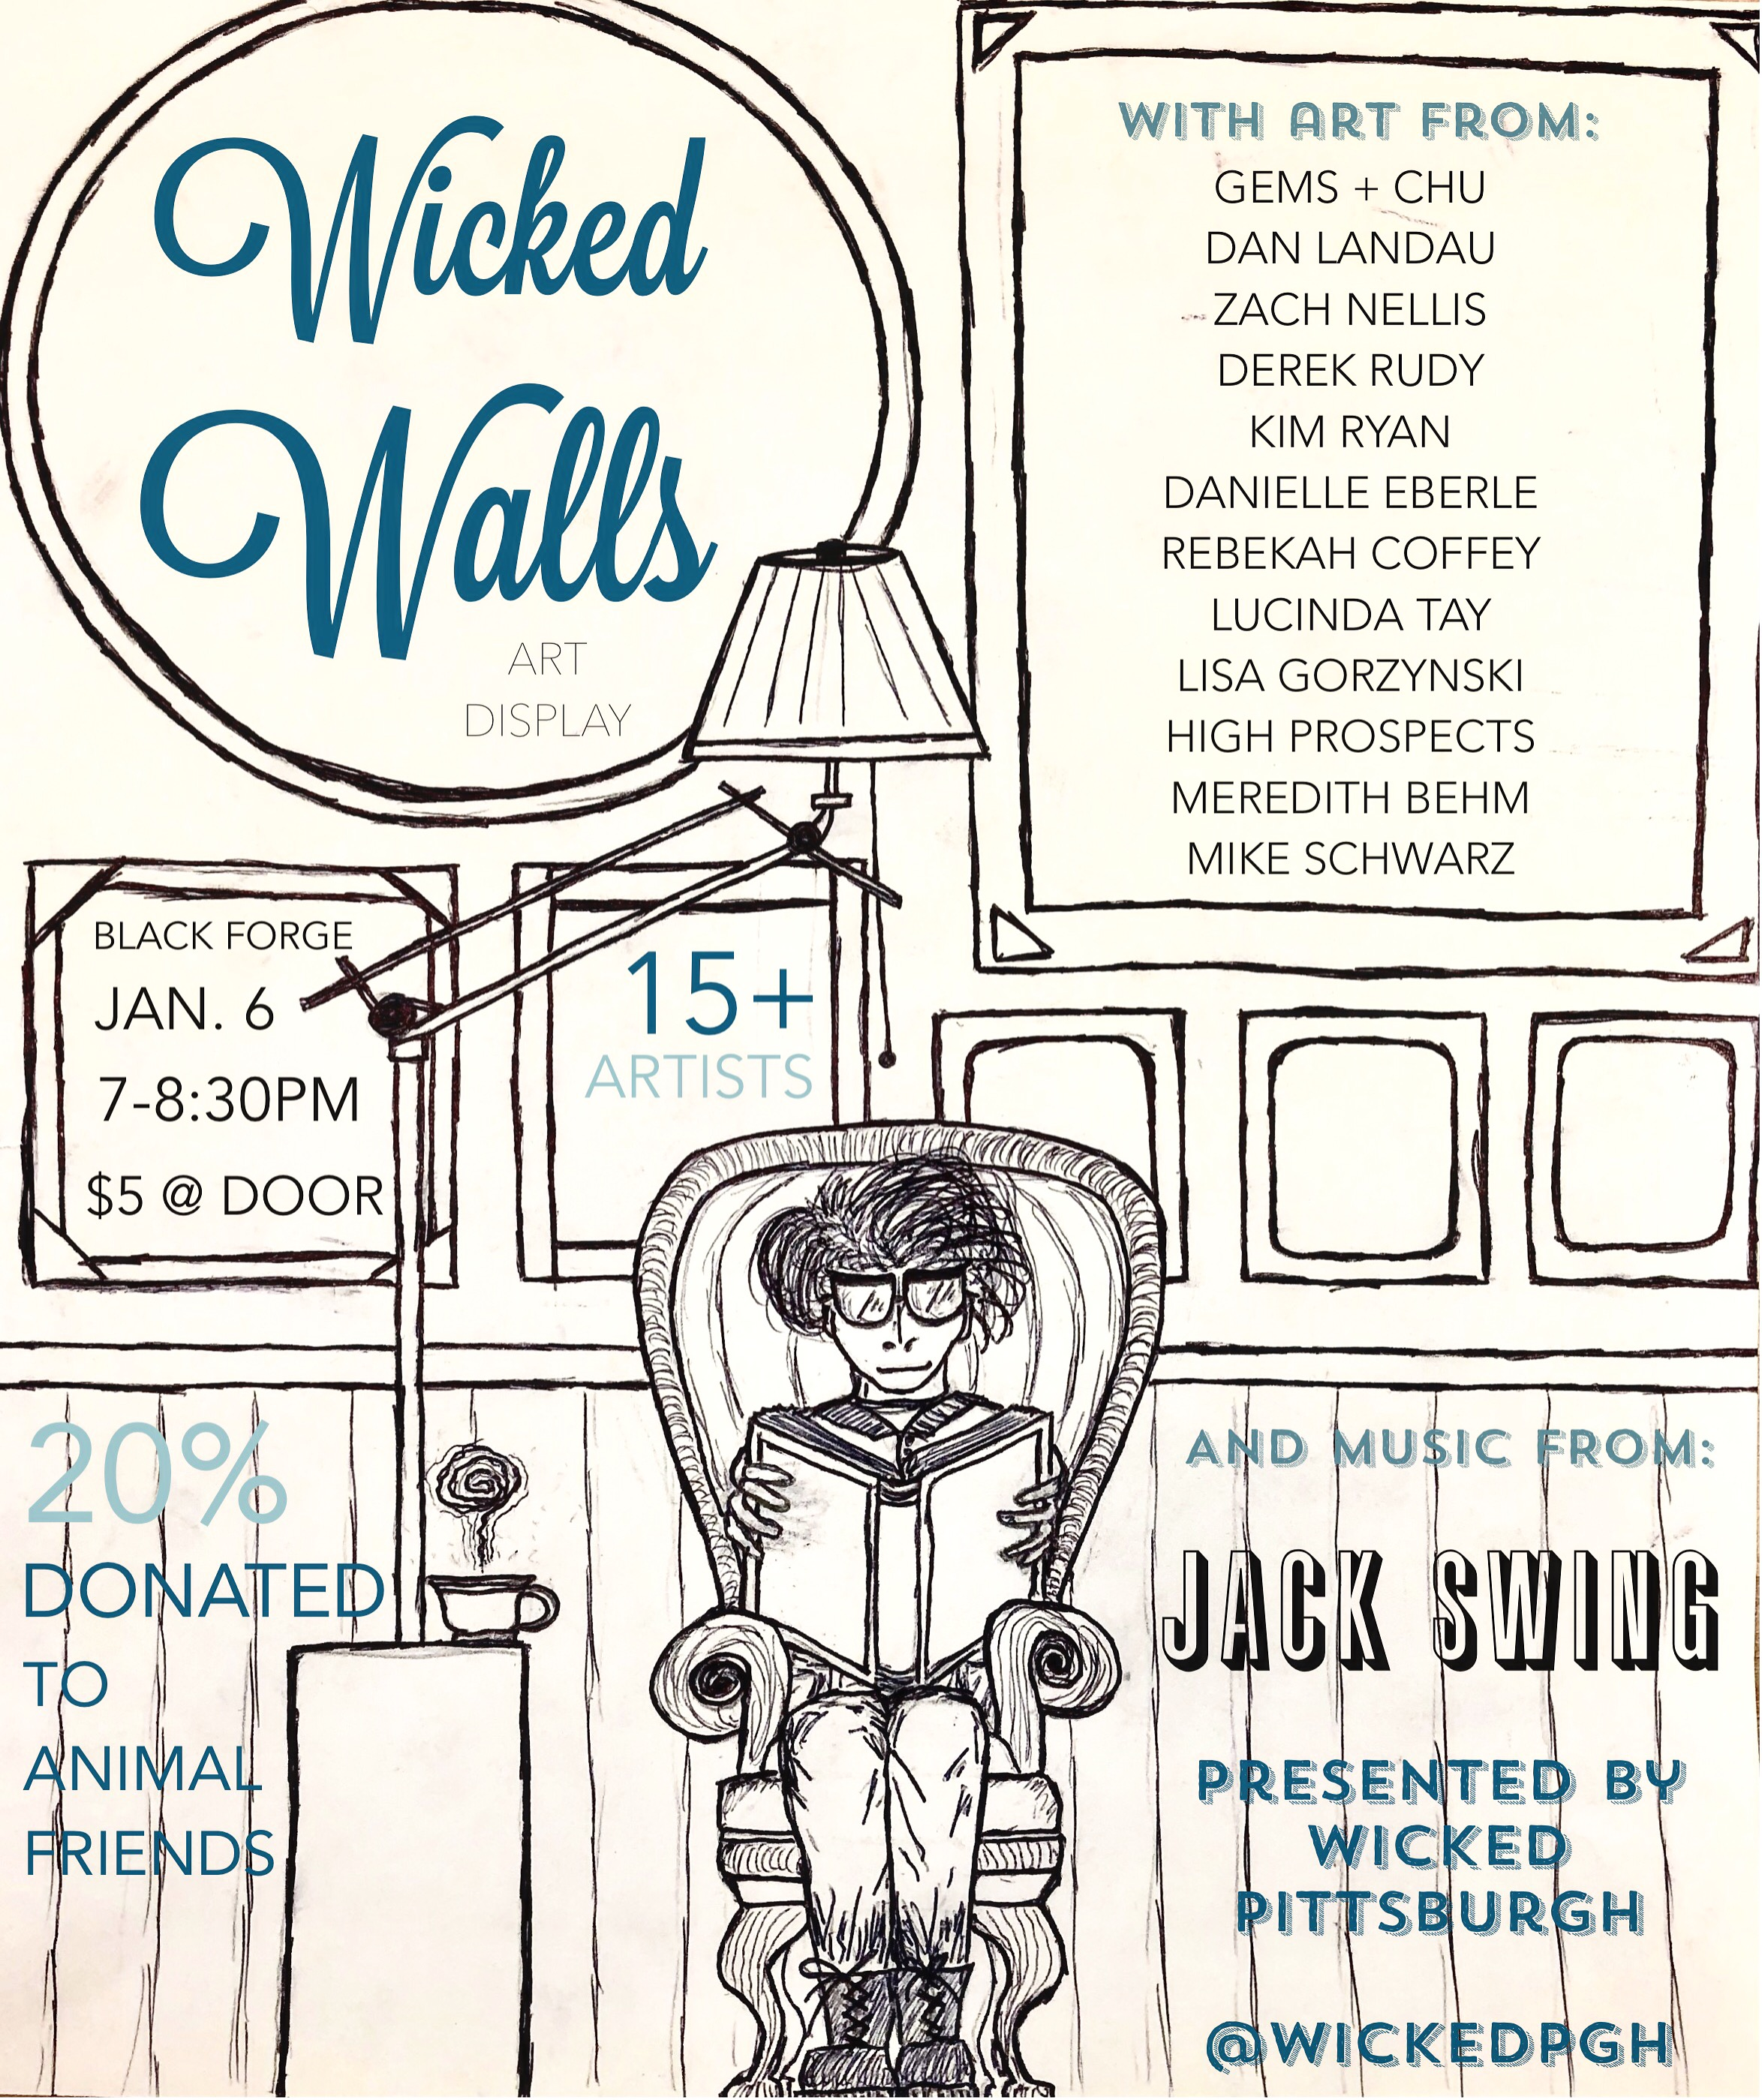 Wicked Walls Flyer Design - Black Forge